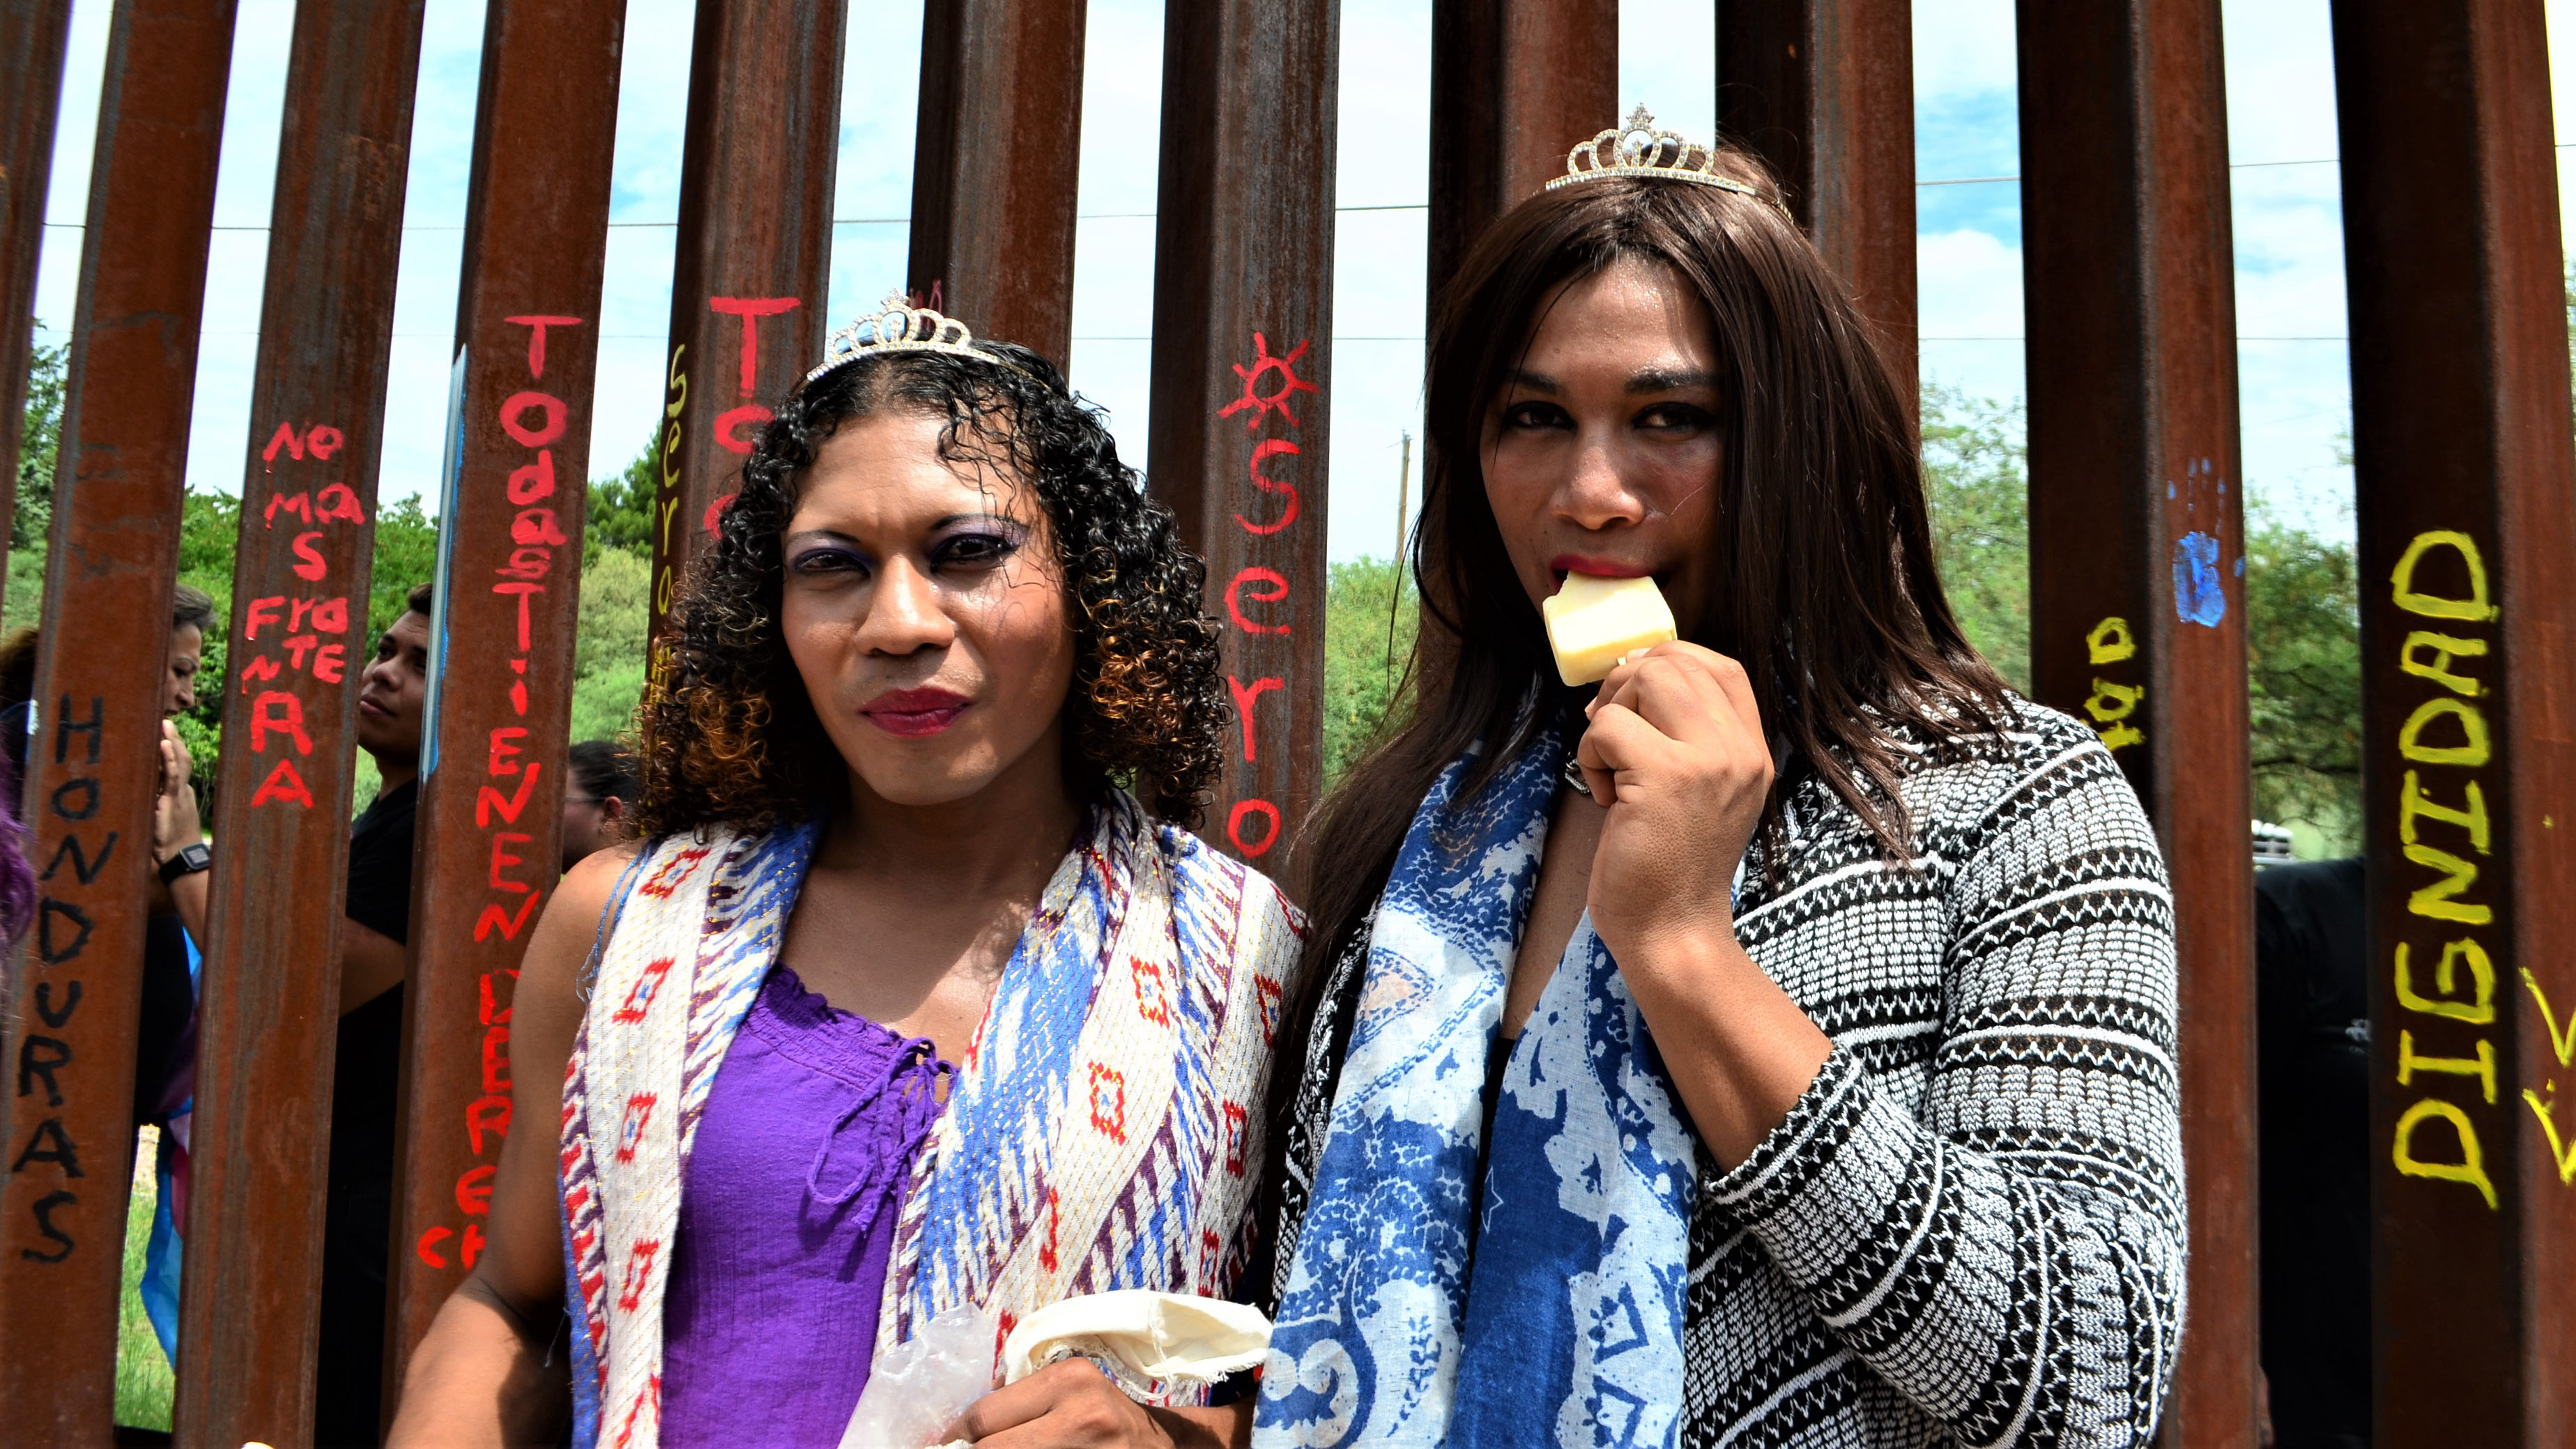 Joseling, left, and Estefany stand in front of the border fence, before walking to the DeConcini Port of Entry in Nogales, on August 10, 2017.